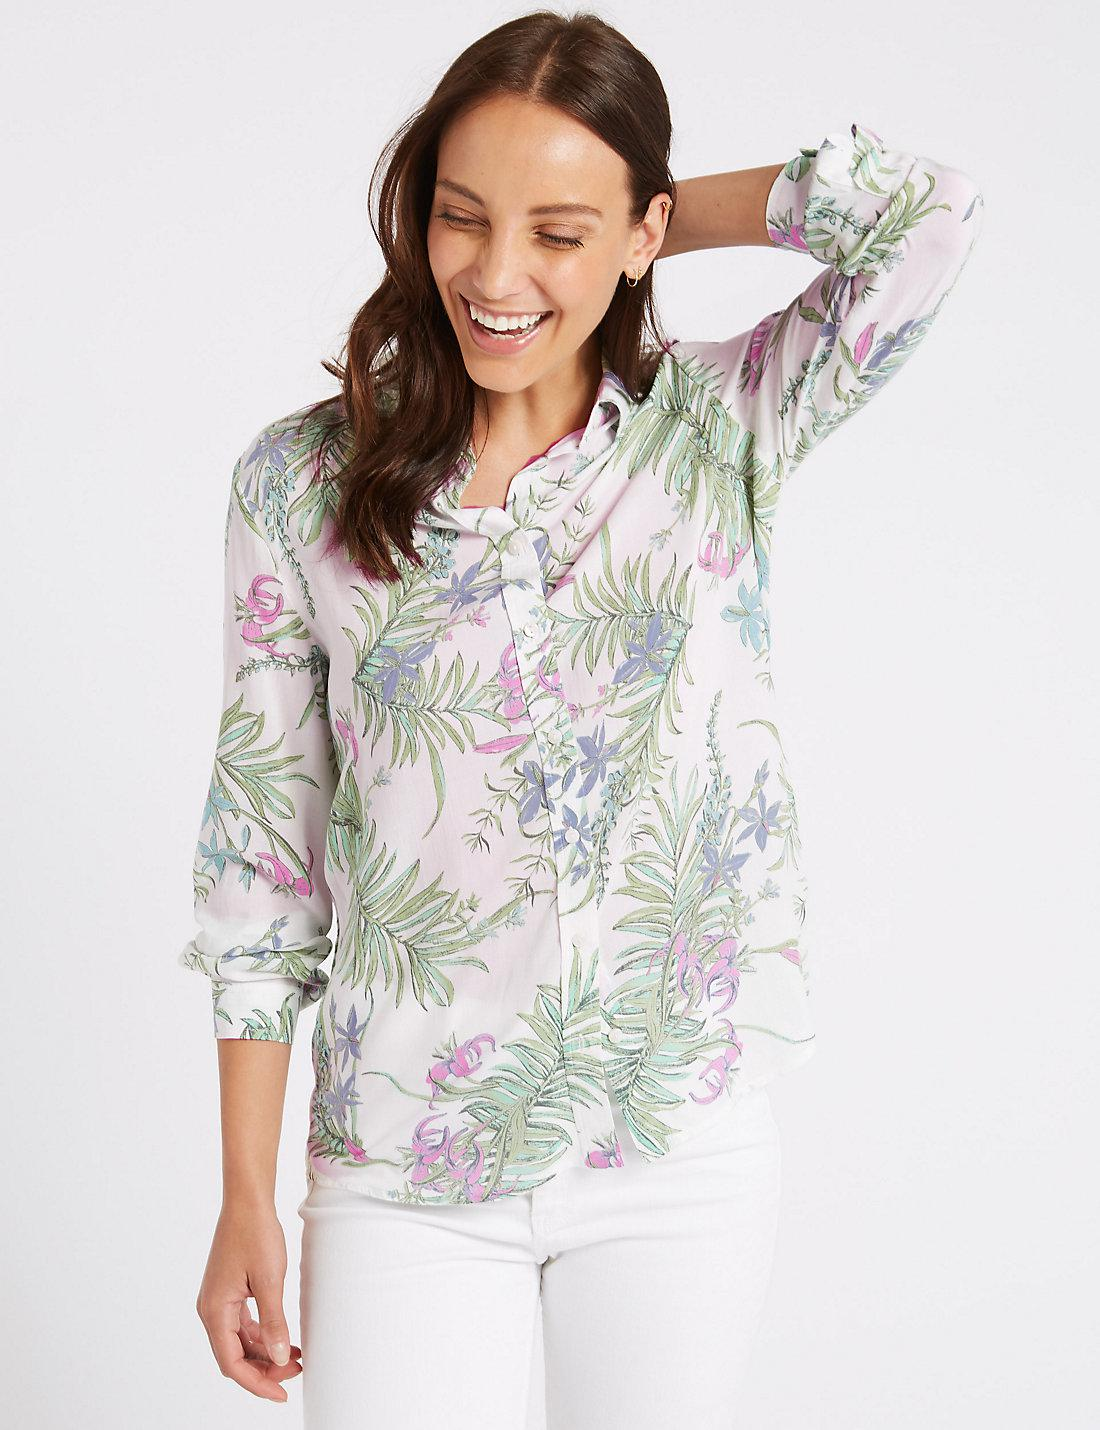 Pure Modal Floral Print Long Sleeve Shirt ivory mix Marks and Spencer Buy Cheap 100% Original Quality Original Cheap Price Wholesale Price f6FhzVGKl